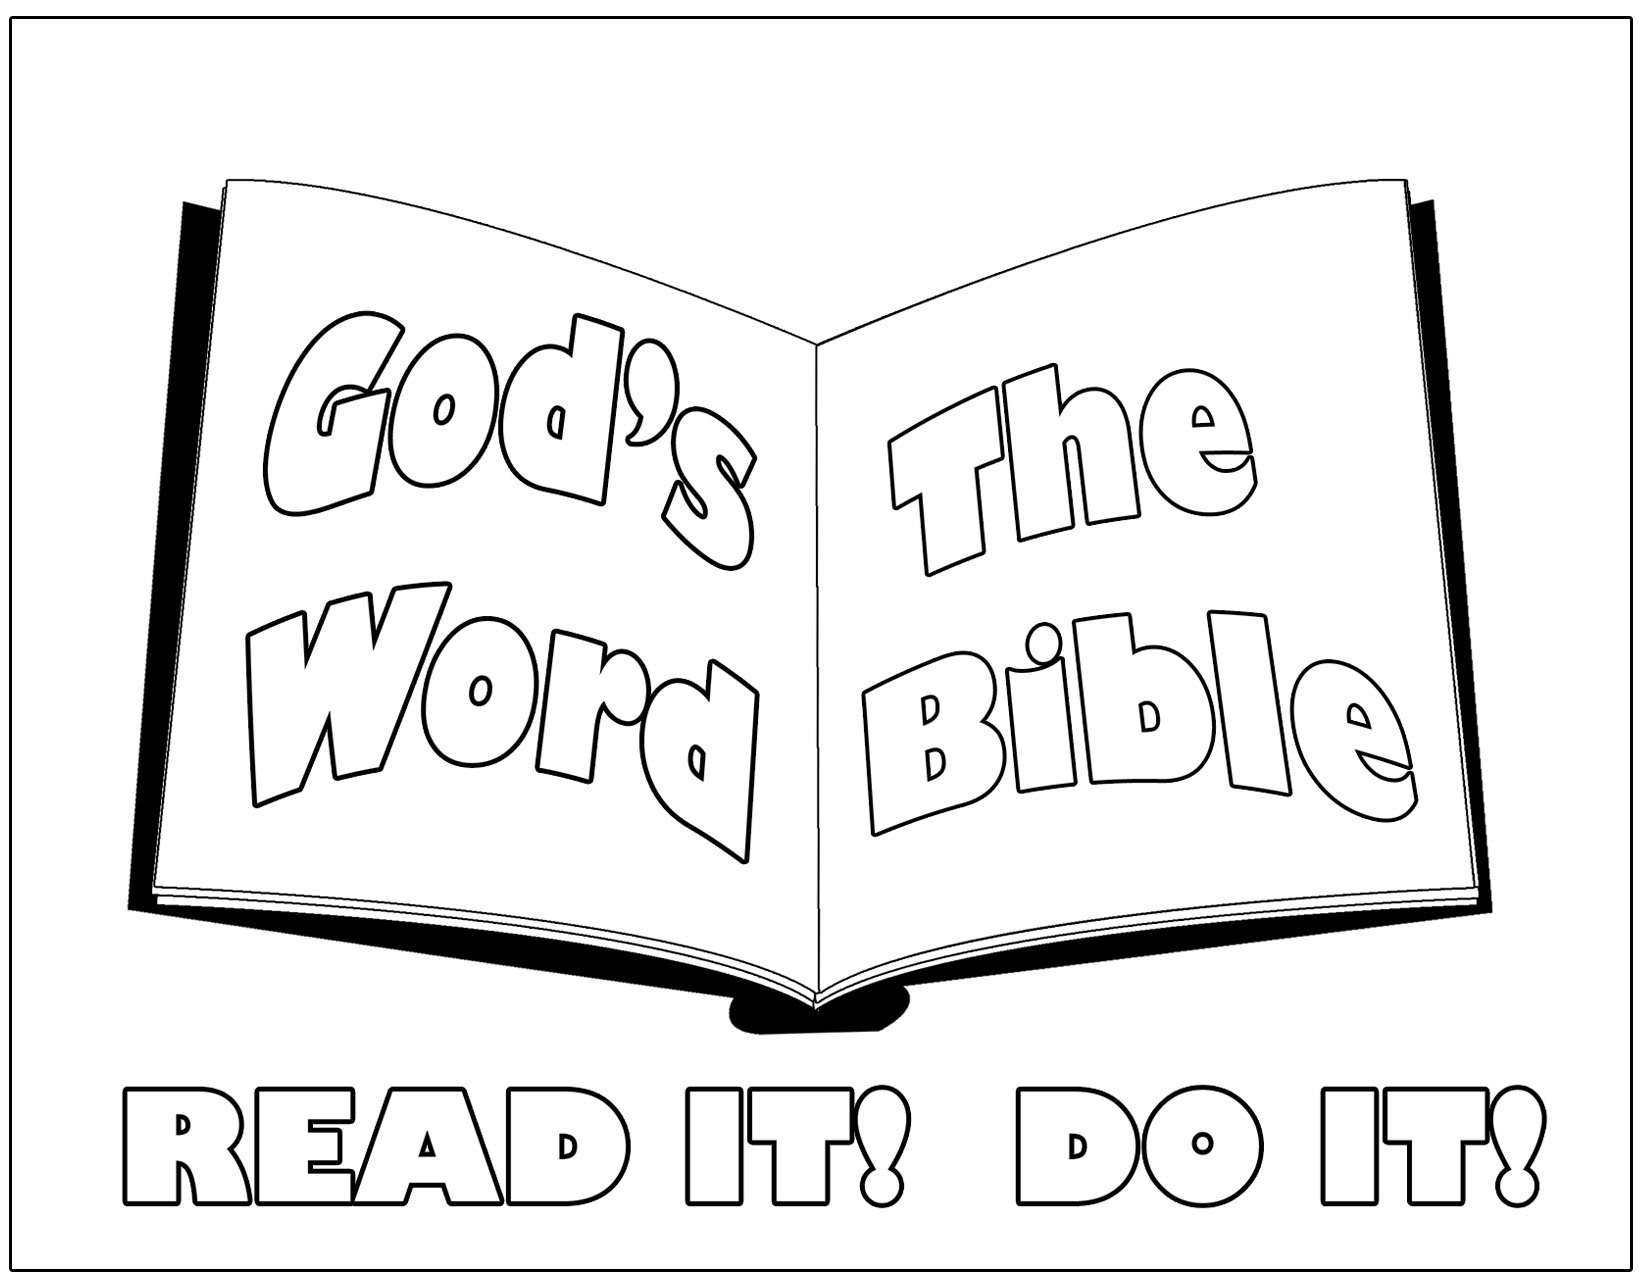 Free Bible Coloring Pages Pleasing Free Printable Bible Coloring Pages For Kids Inspiration Design